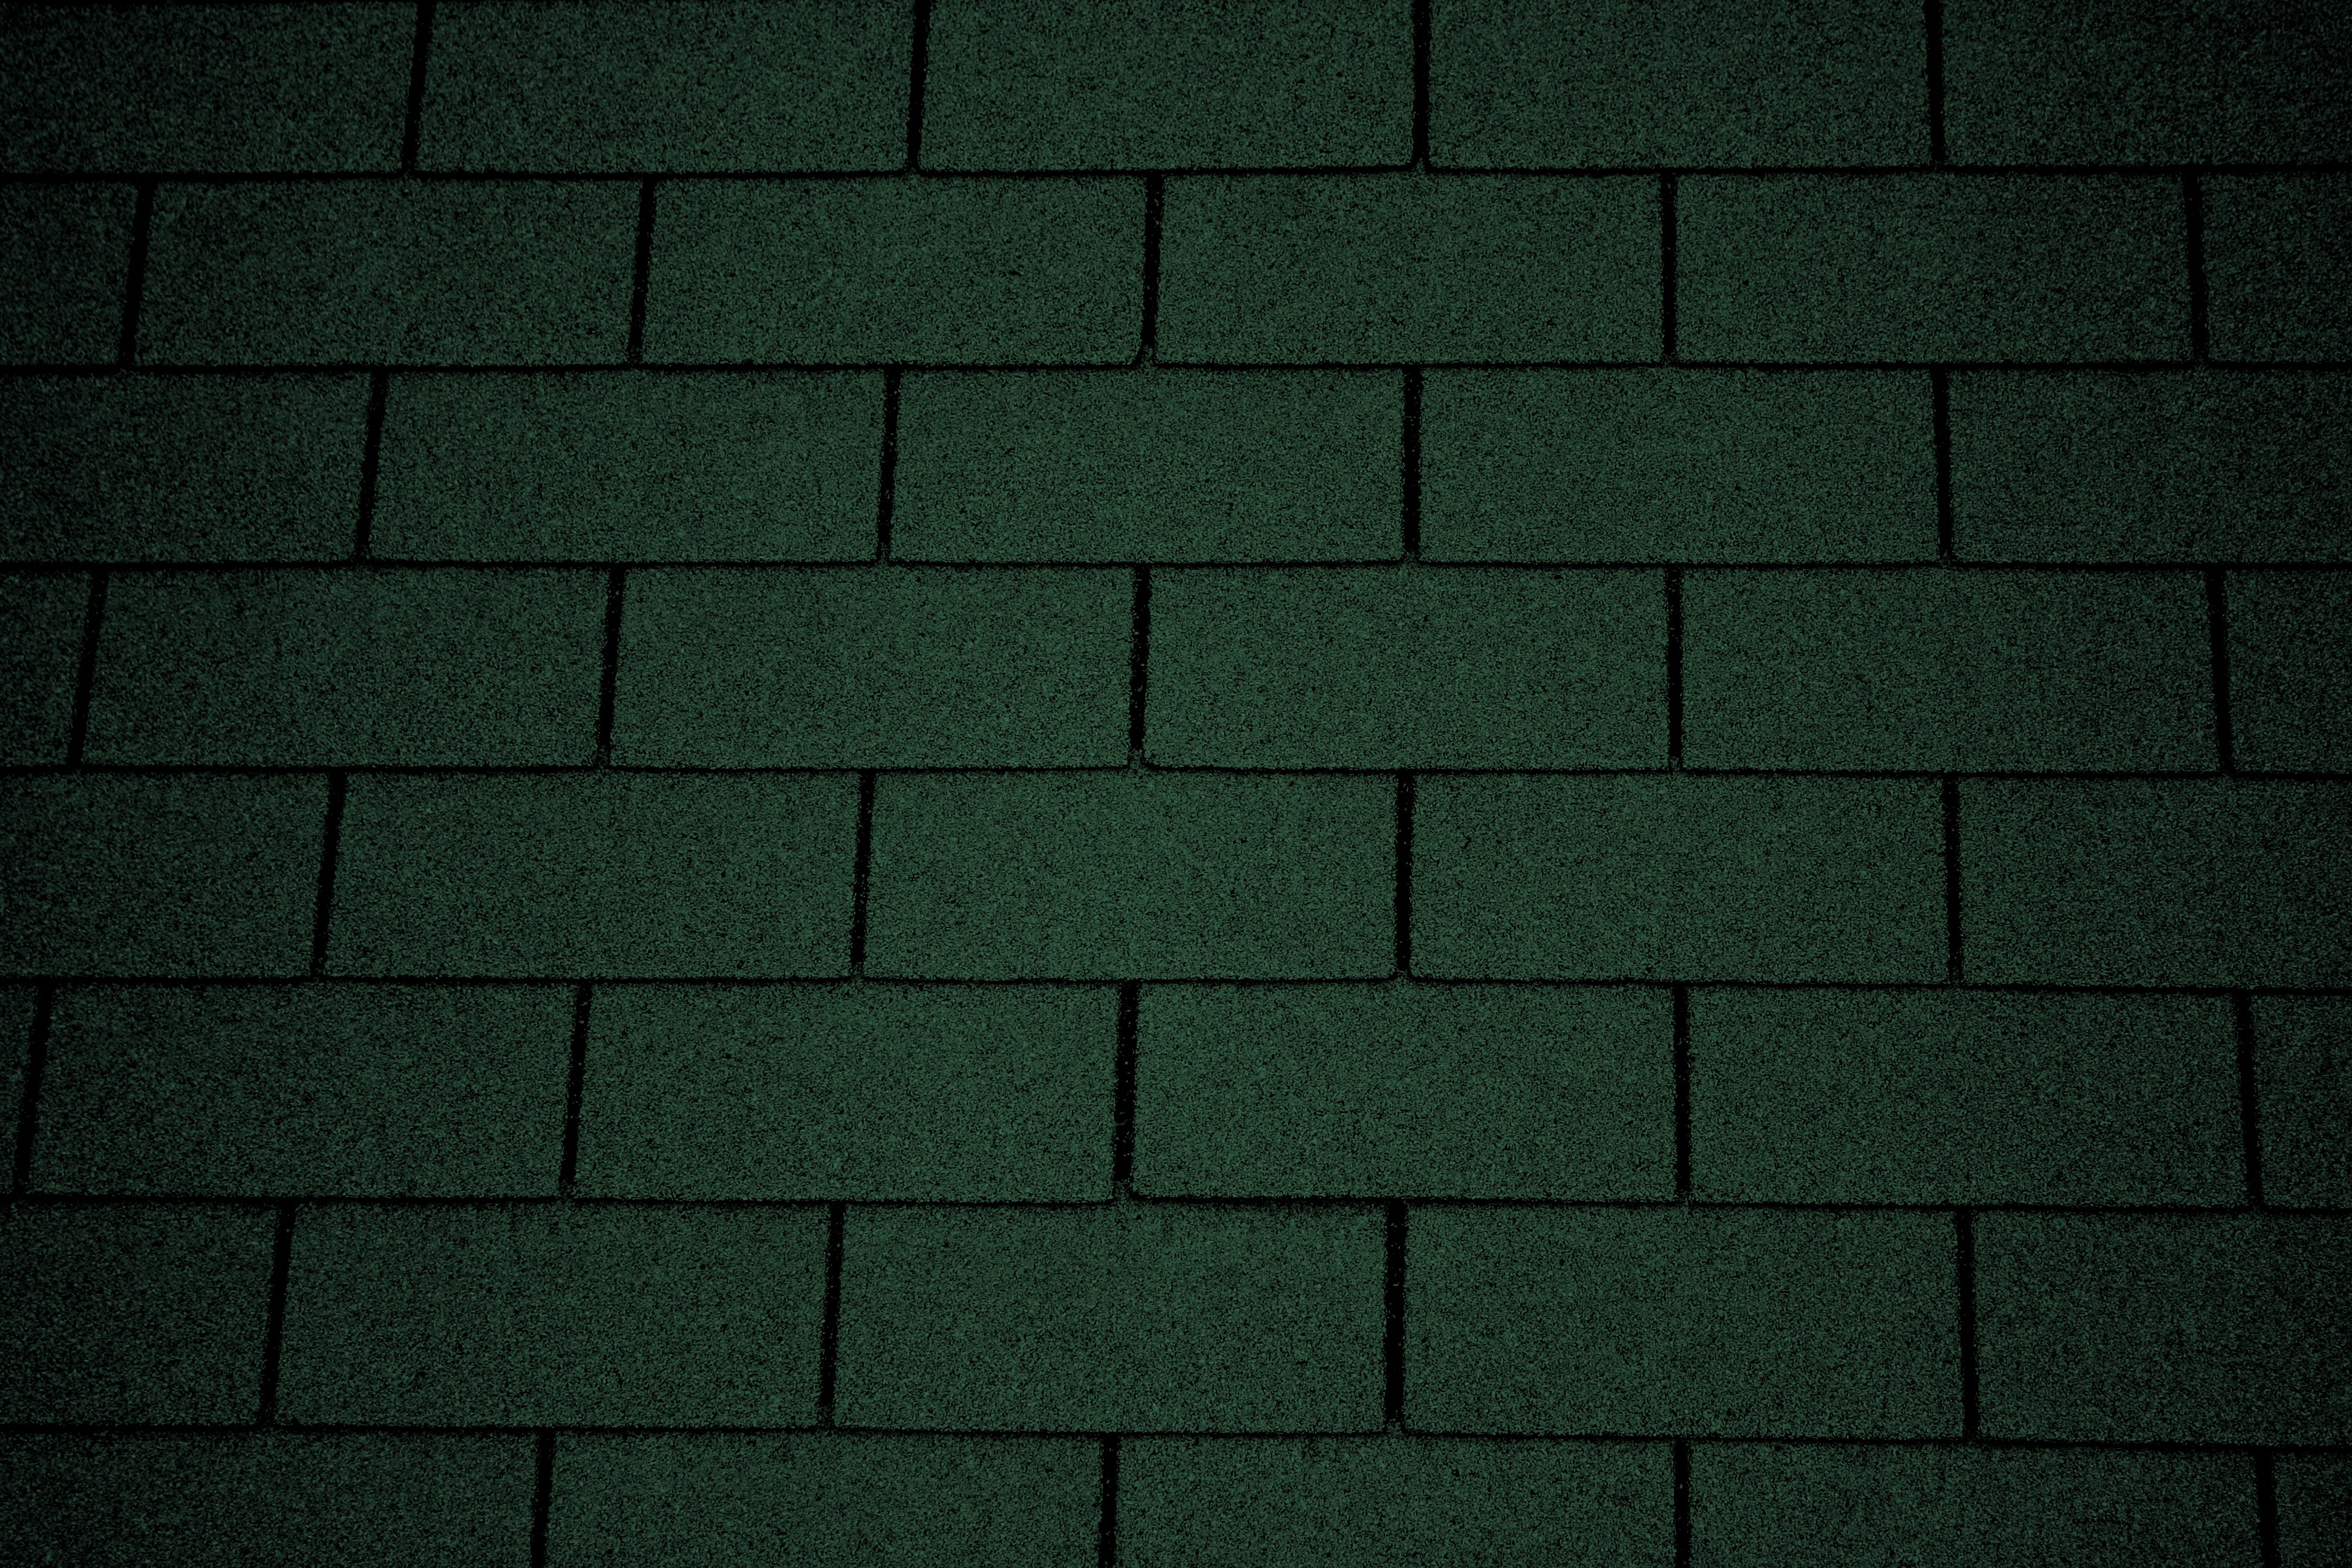 Forest Green Asphalt Roof Shingles Texture Picture Free